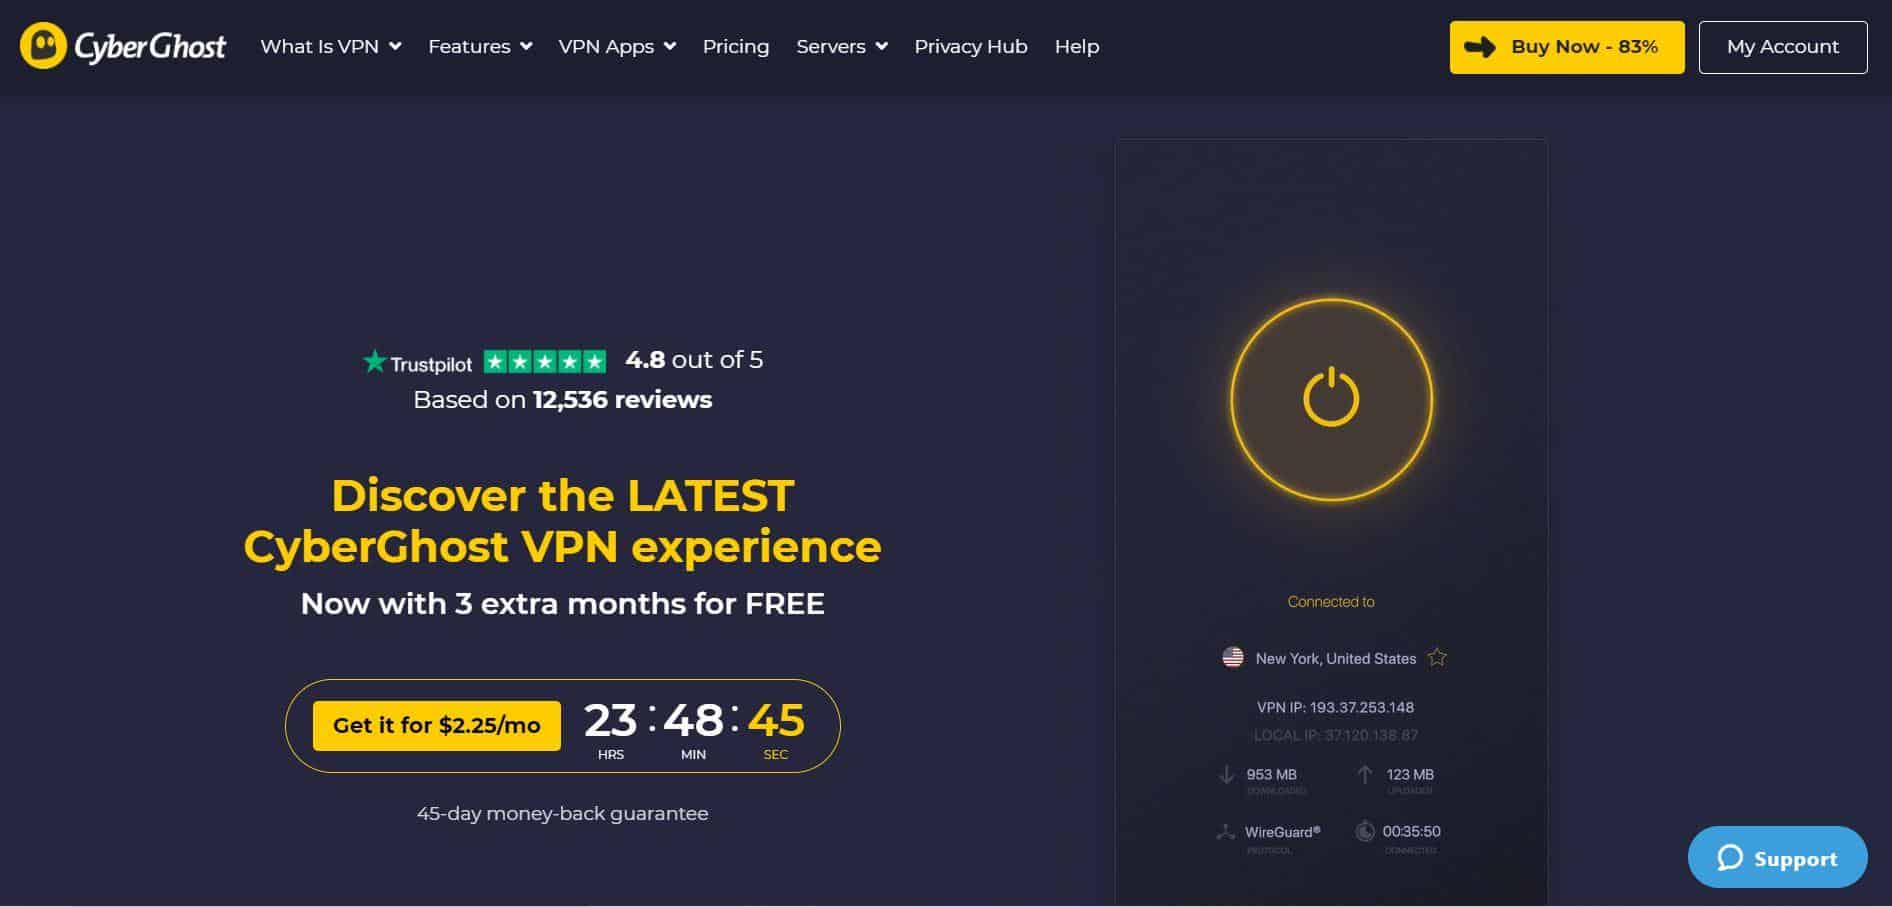 CyberGhost VPN is VPN Singapore Reviews this year - The Best & Worst, How Legal is using a VPN in Singapore in 2021, How to start using VPN Singapore? — Best Choice for Netflix Vpn in Singapore, vpn for US sites